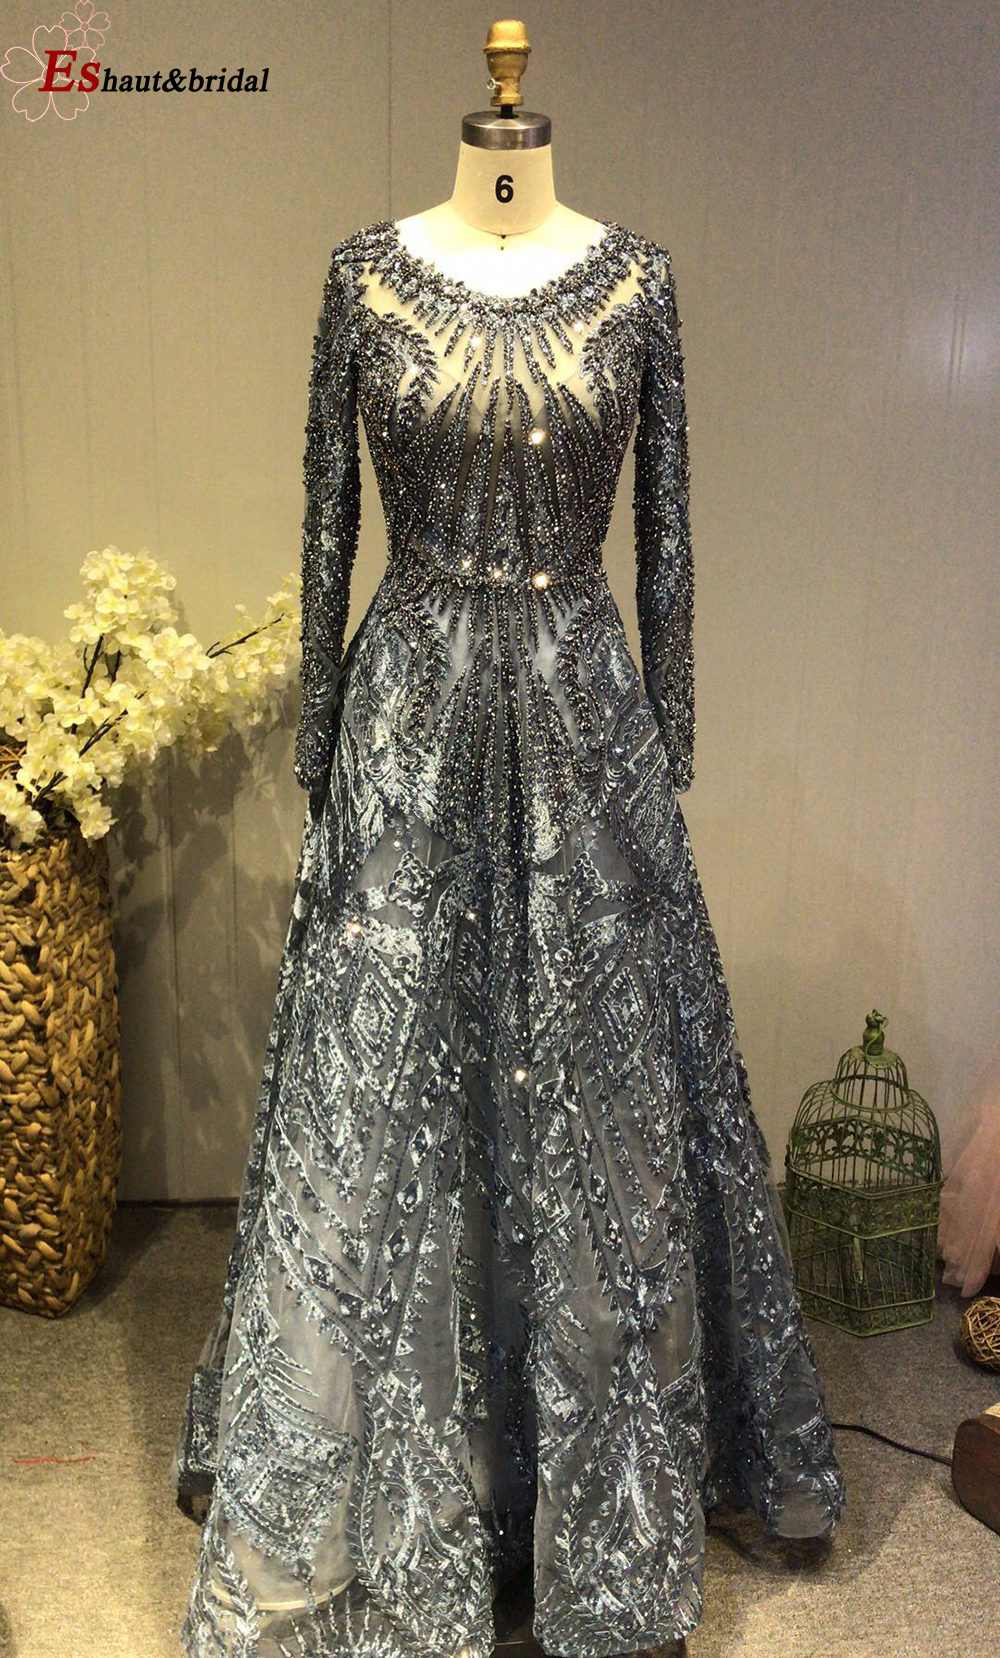 2019 O-Neck Crystal Handmade Evening Dress Long Sleeves Full Lace Luxury Luxury Formal Party Gowns